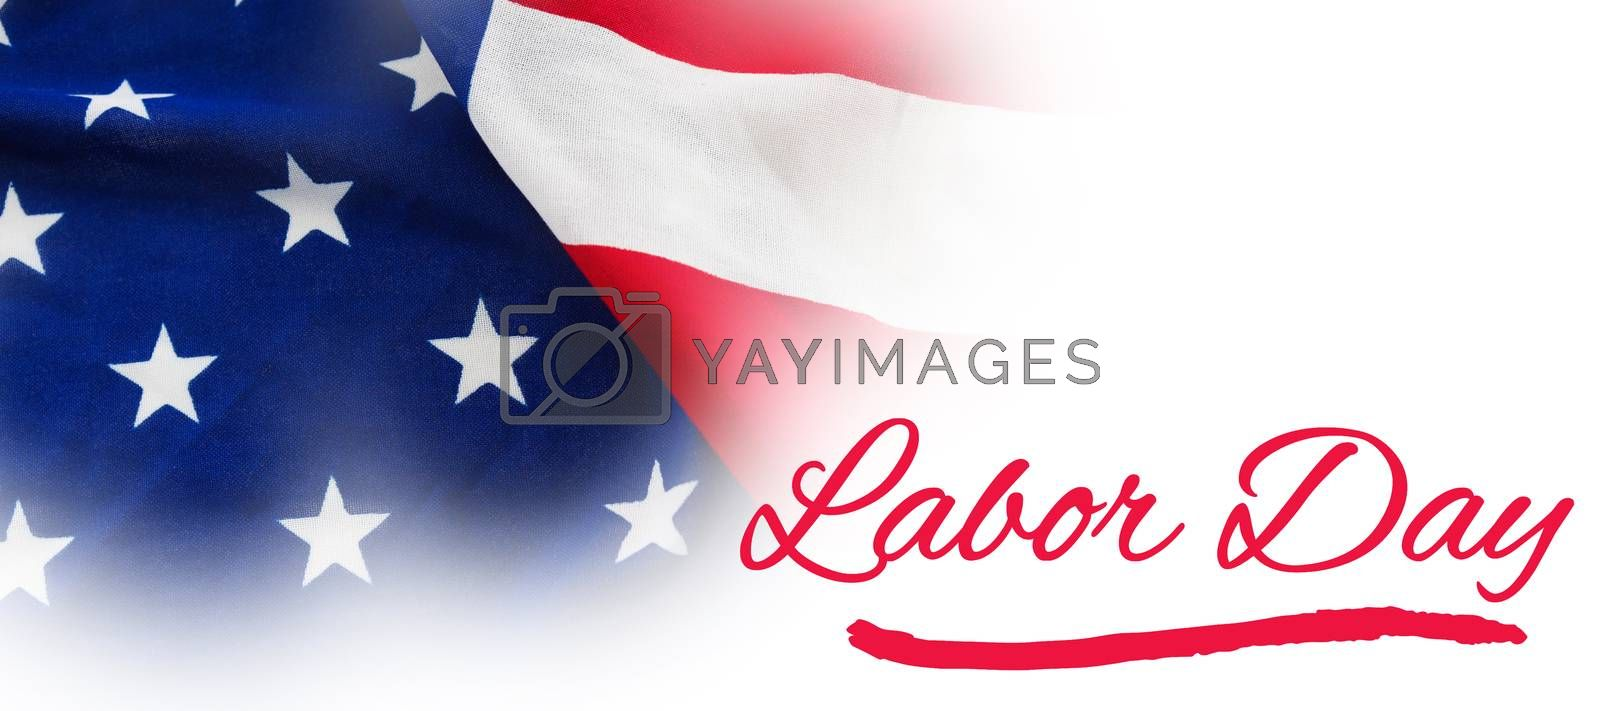 Composite image of panoramic shot of labor day text by Wavebreakmedia